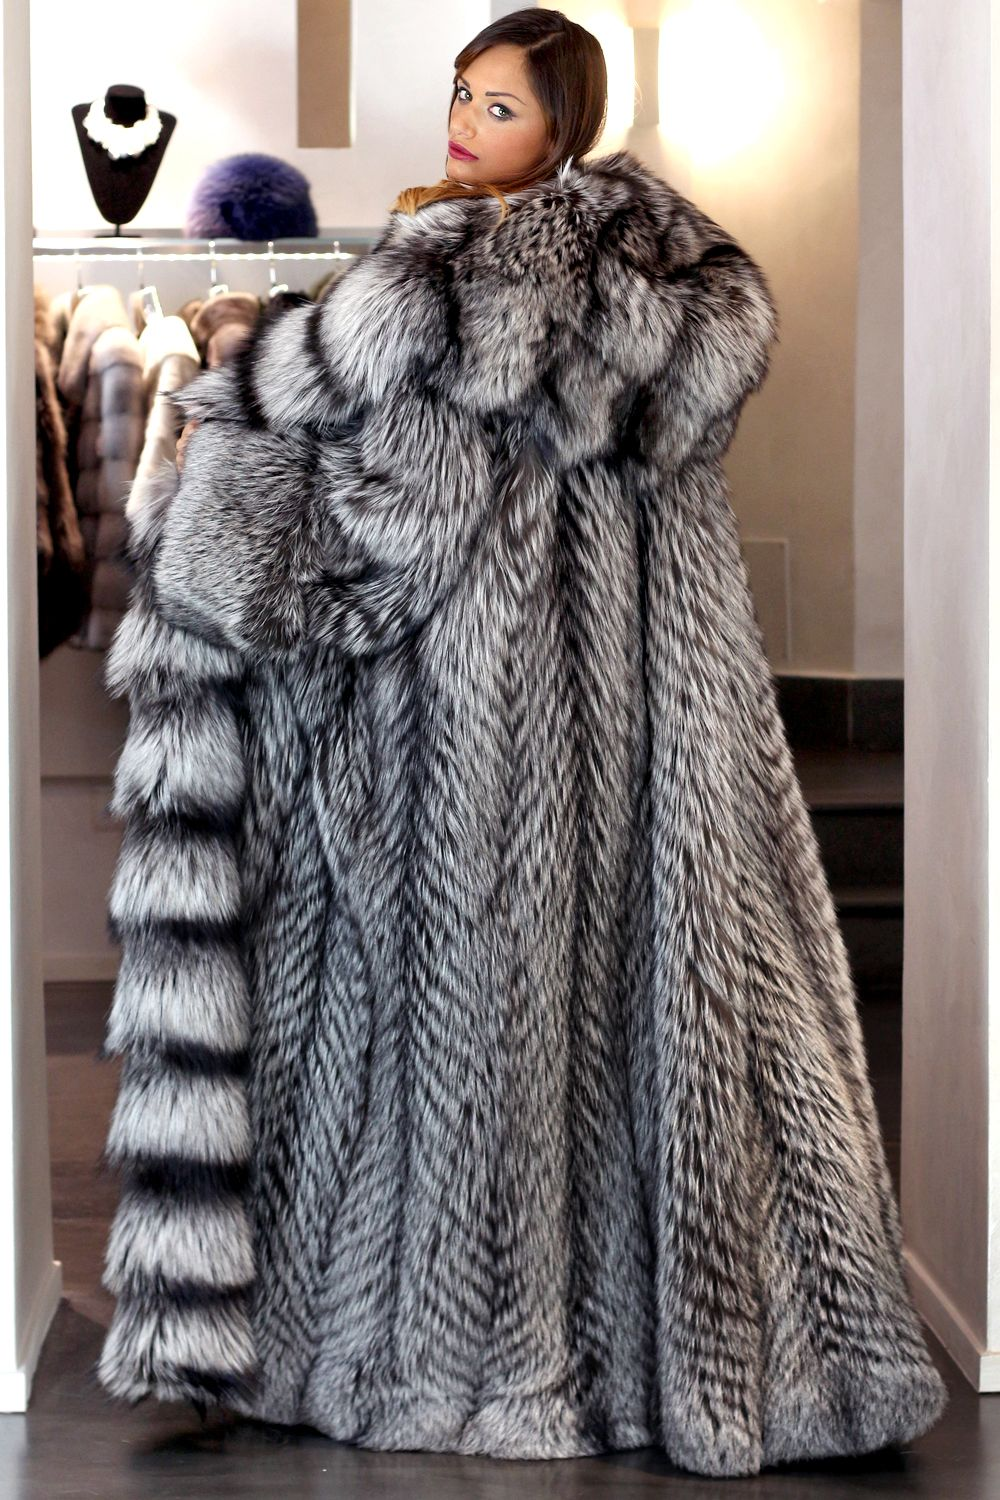 silver fox fur coat in my dreams!! | fashion | Pinterest | Devil